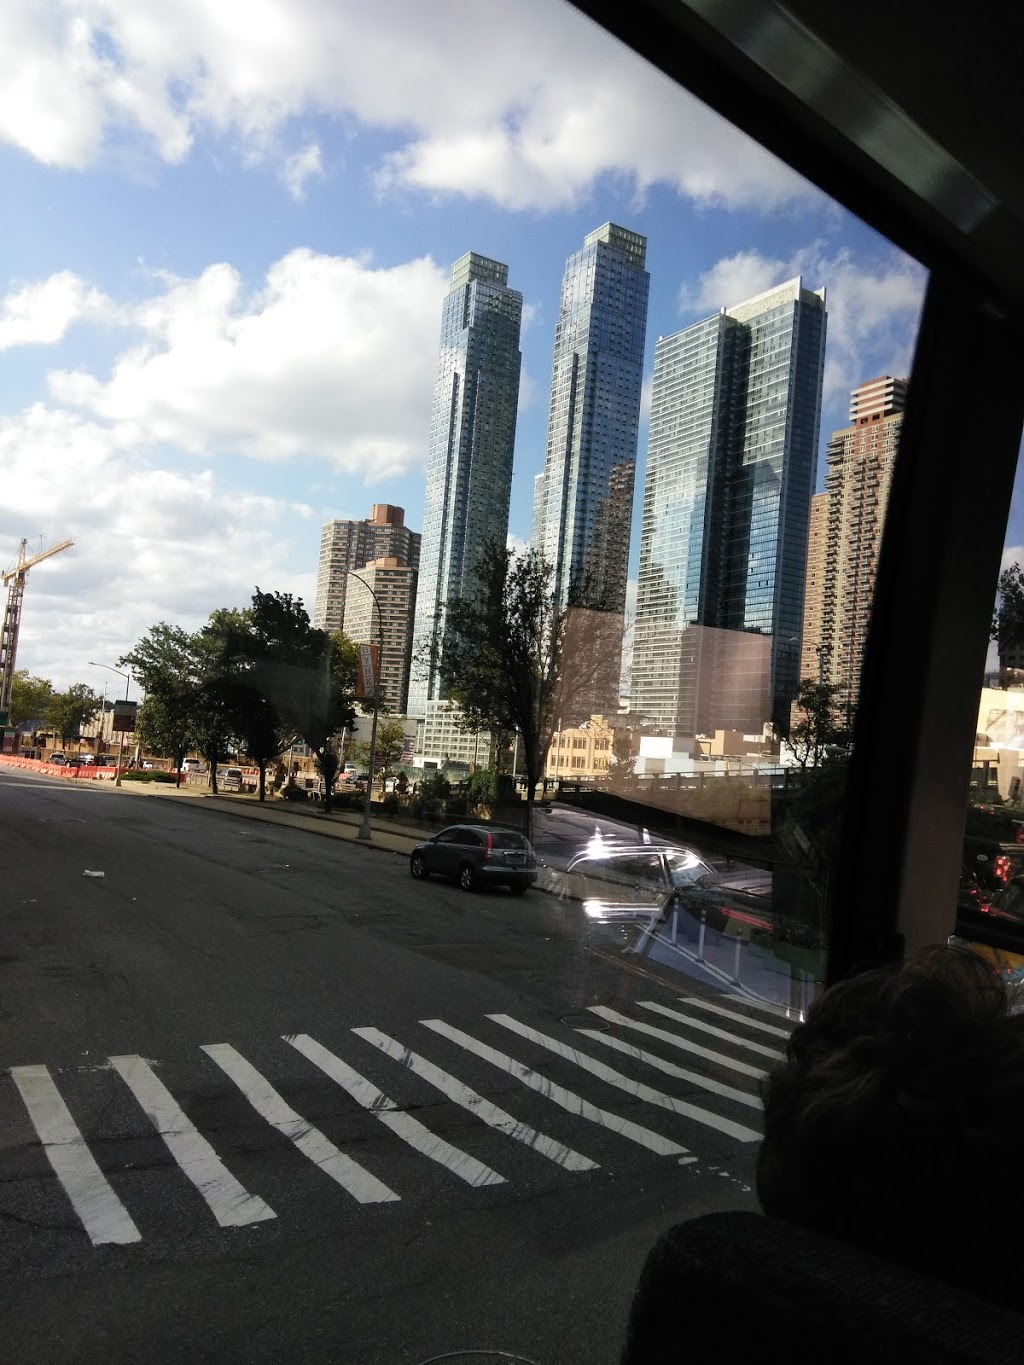 Skyline Sightseeing | travel agency | 235 W 42nd St, New York, NY 10036, USA | 2129671109 OR +1 212-967-1109